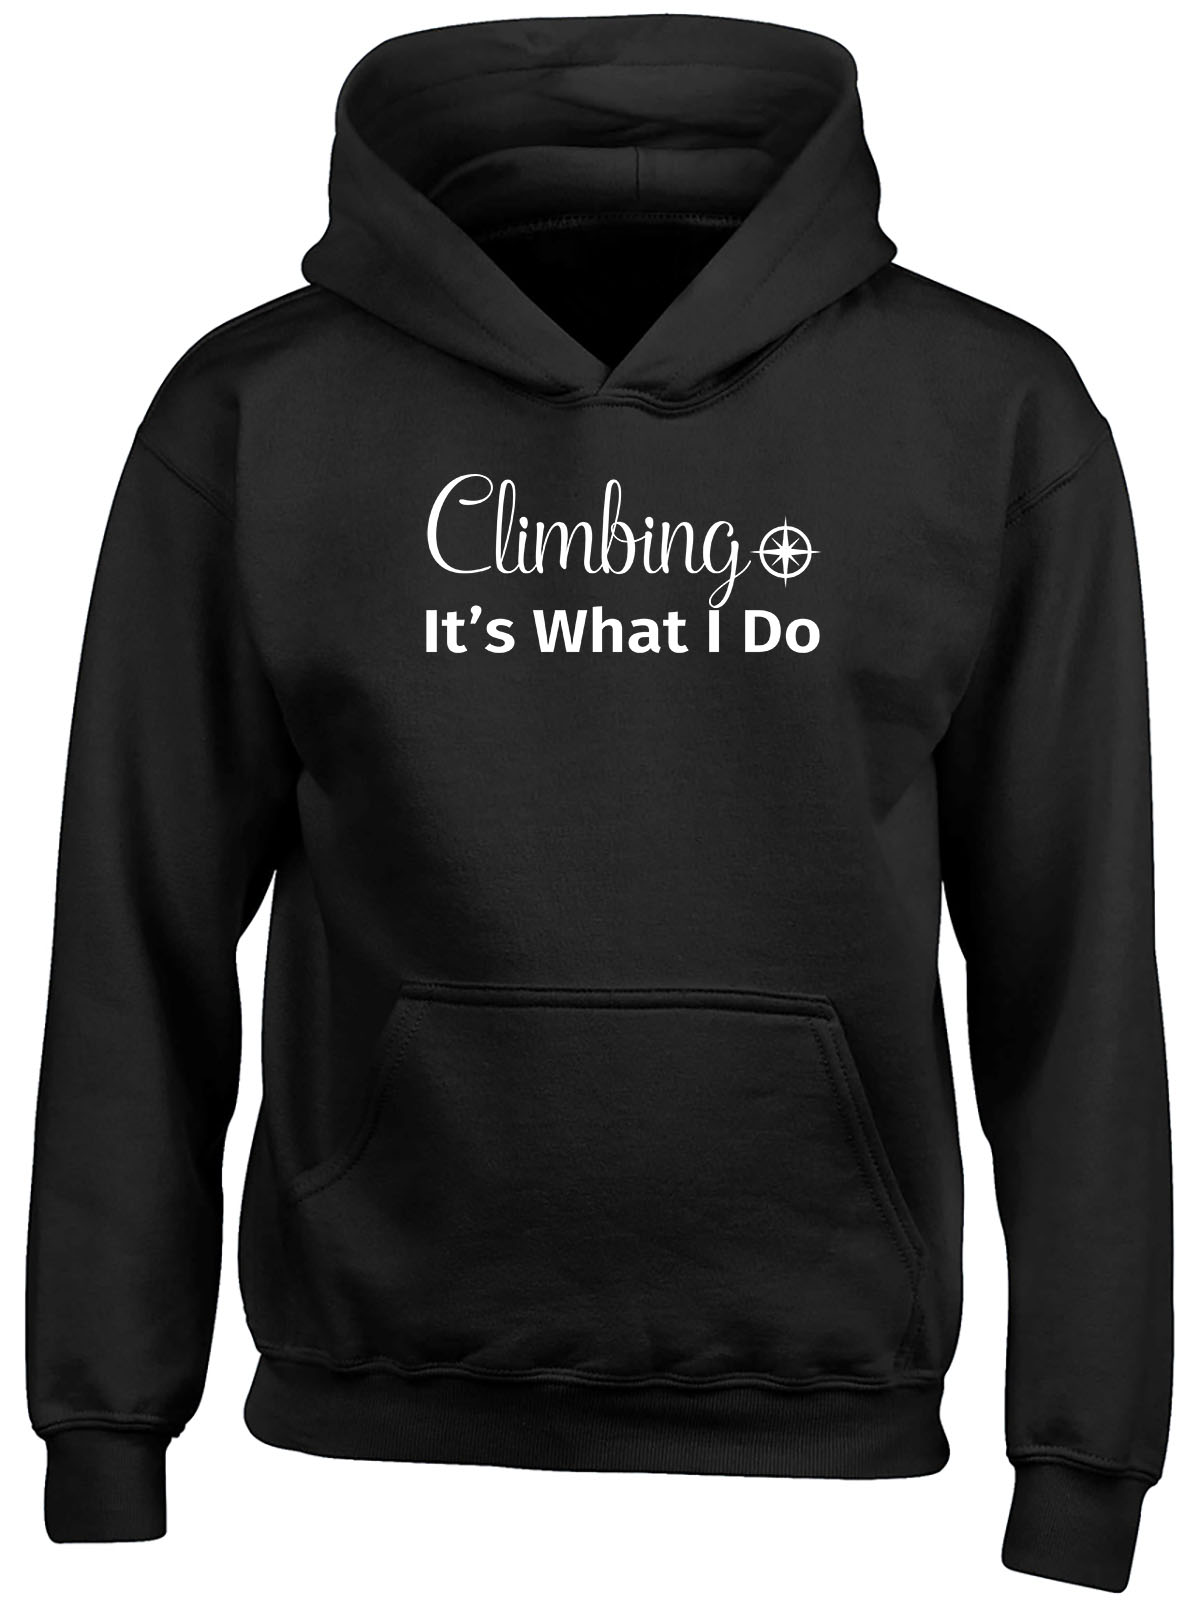 Climbing It's What I Do Childrens Kids Hooded Top Hoodie Boys Girls